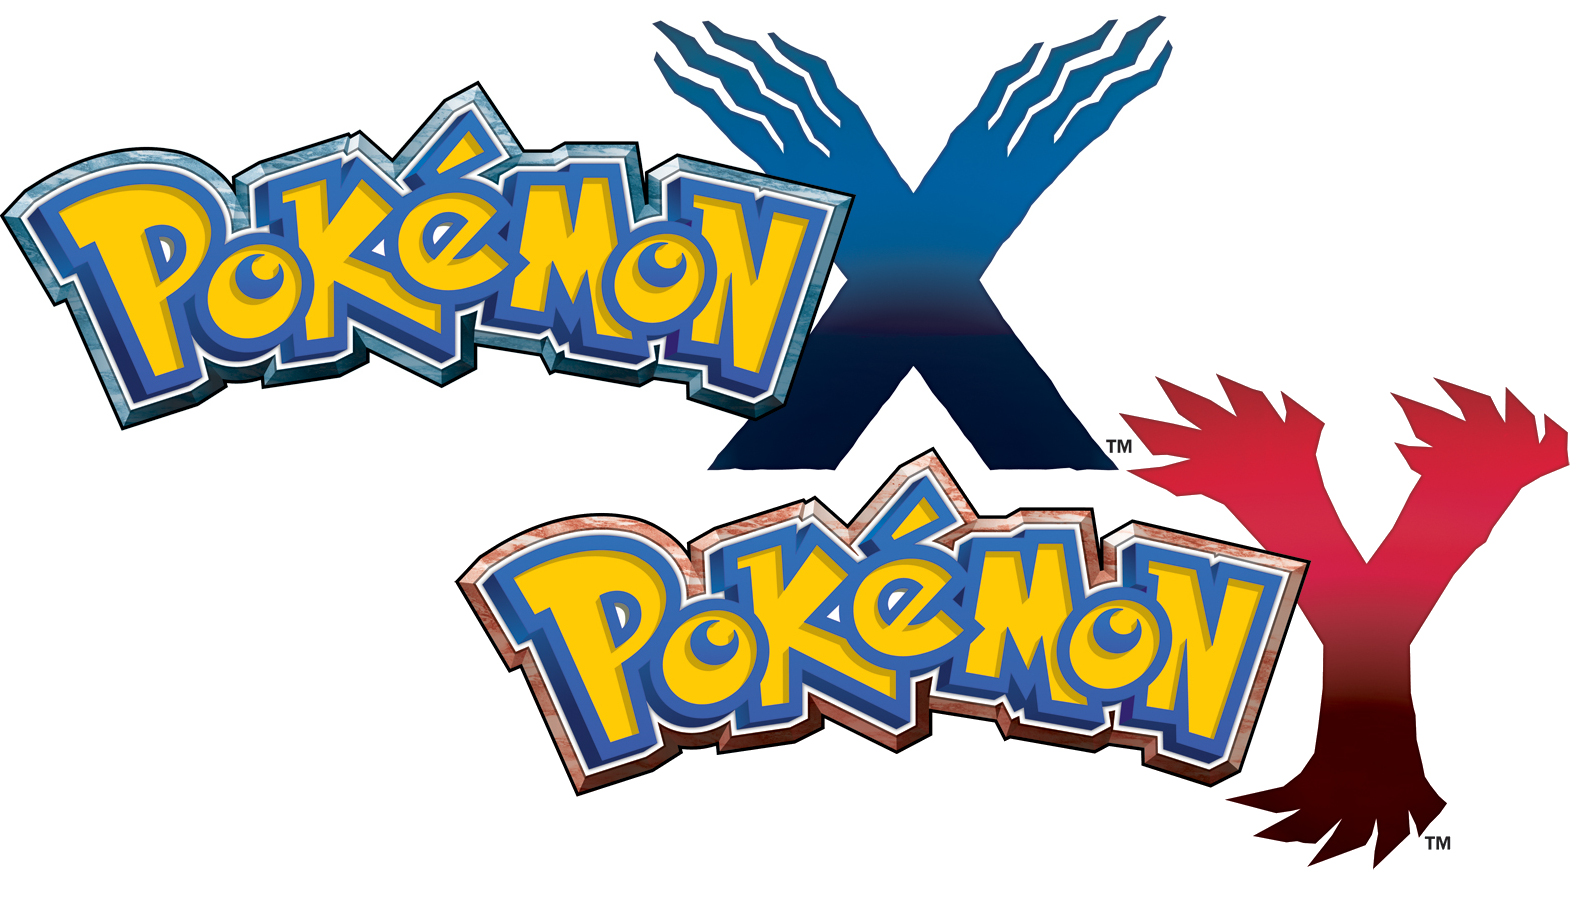 Two North American Pokemon X/Y commercials